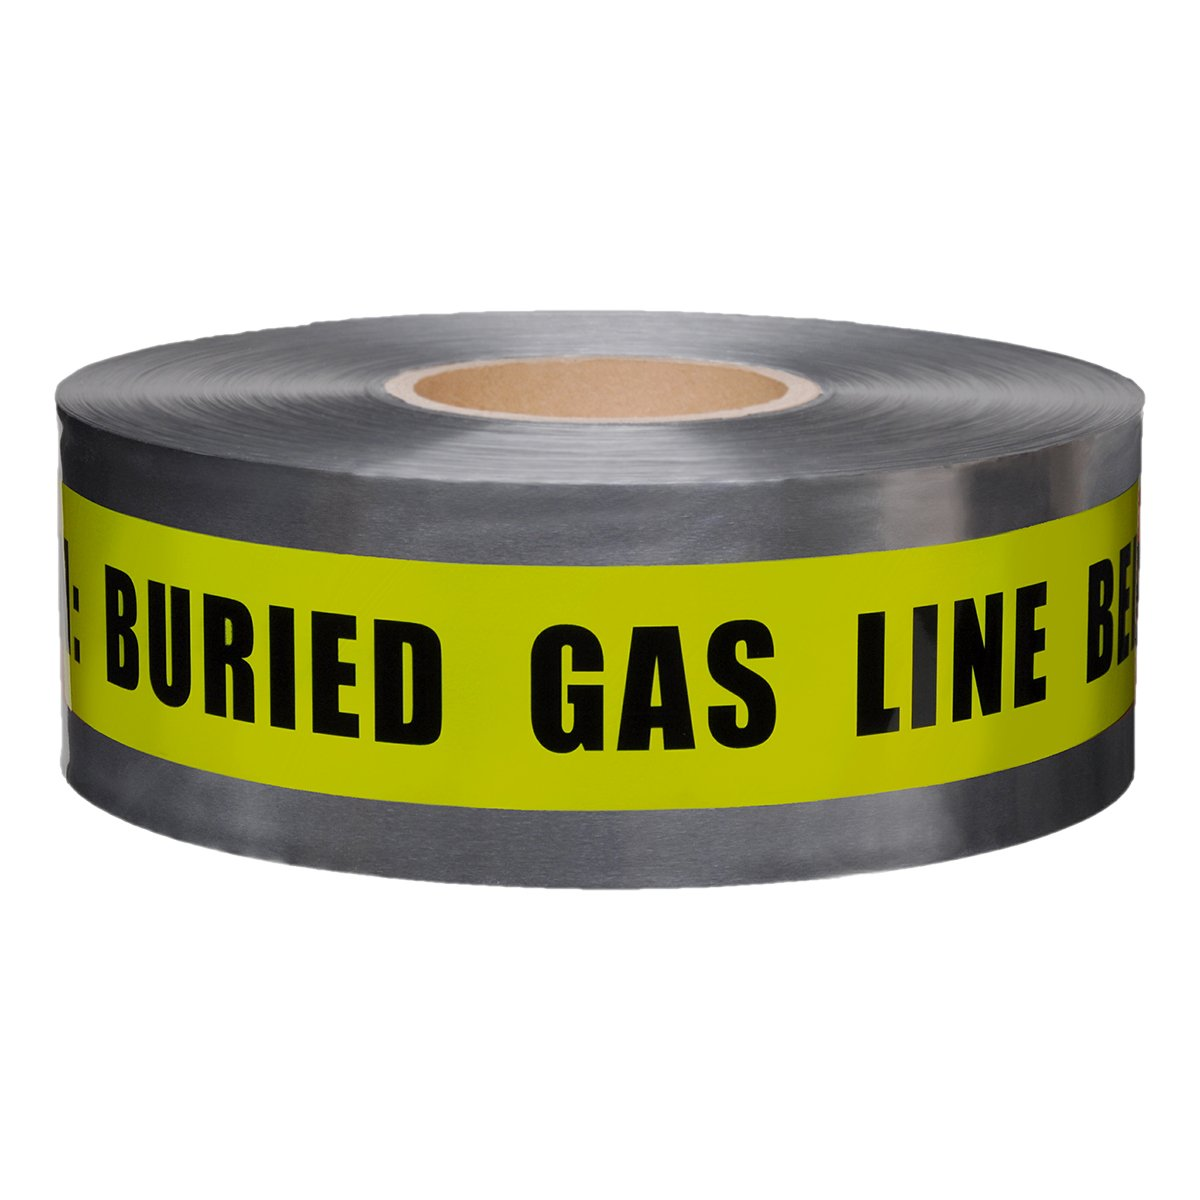 Presco Underground Detectable Warning Tape: 3 in. x 333.3 yds. (Yellow with Black''CAUTION: BURIED GAS LINE BELOW'' printing)